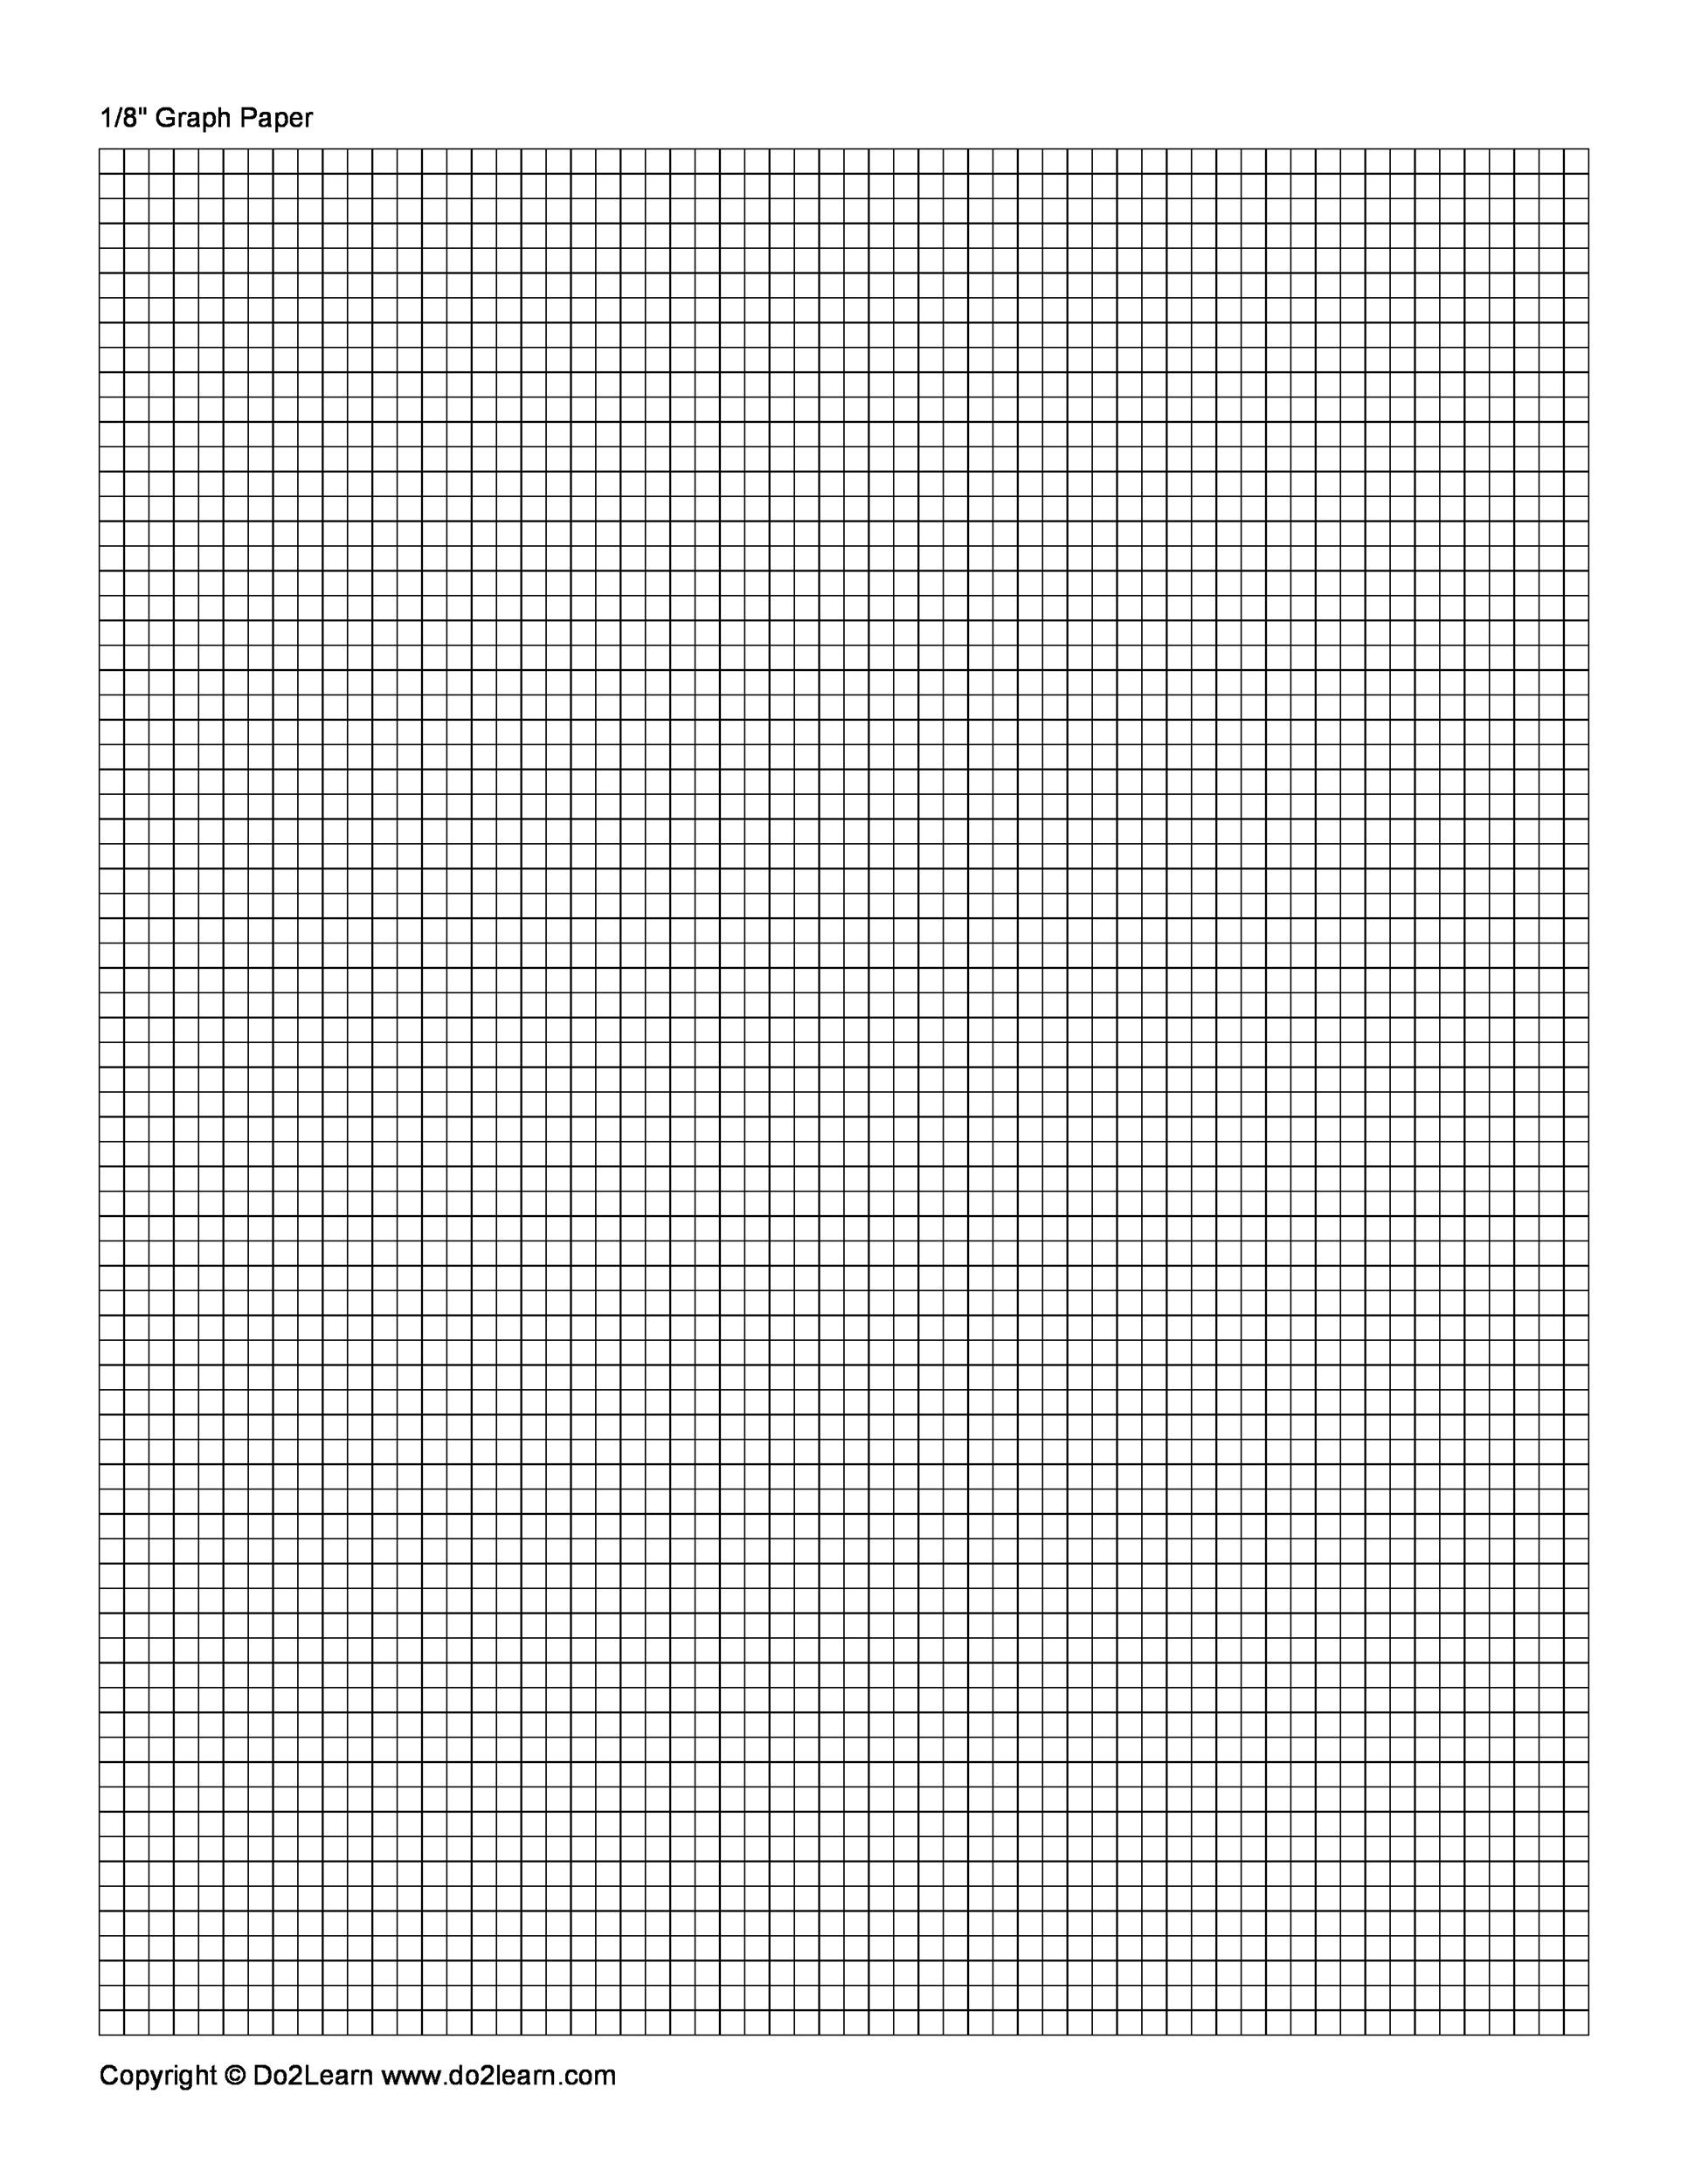 Printable Graph Paper Template 01  Lined Paper Template Word